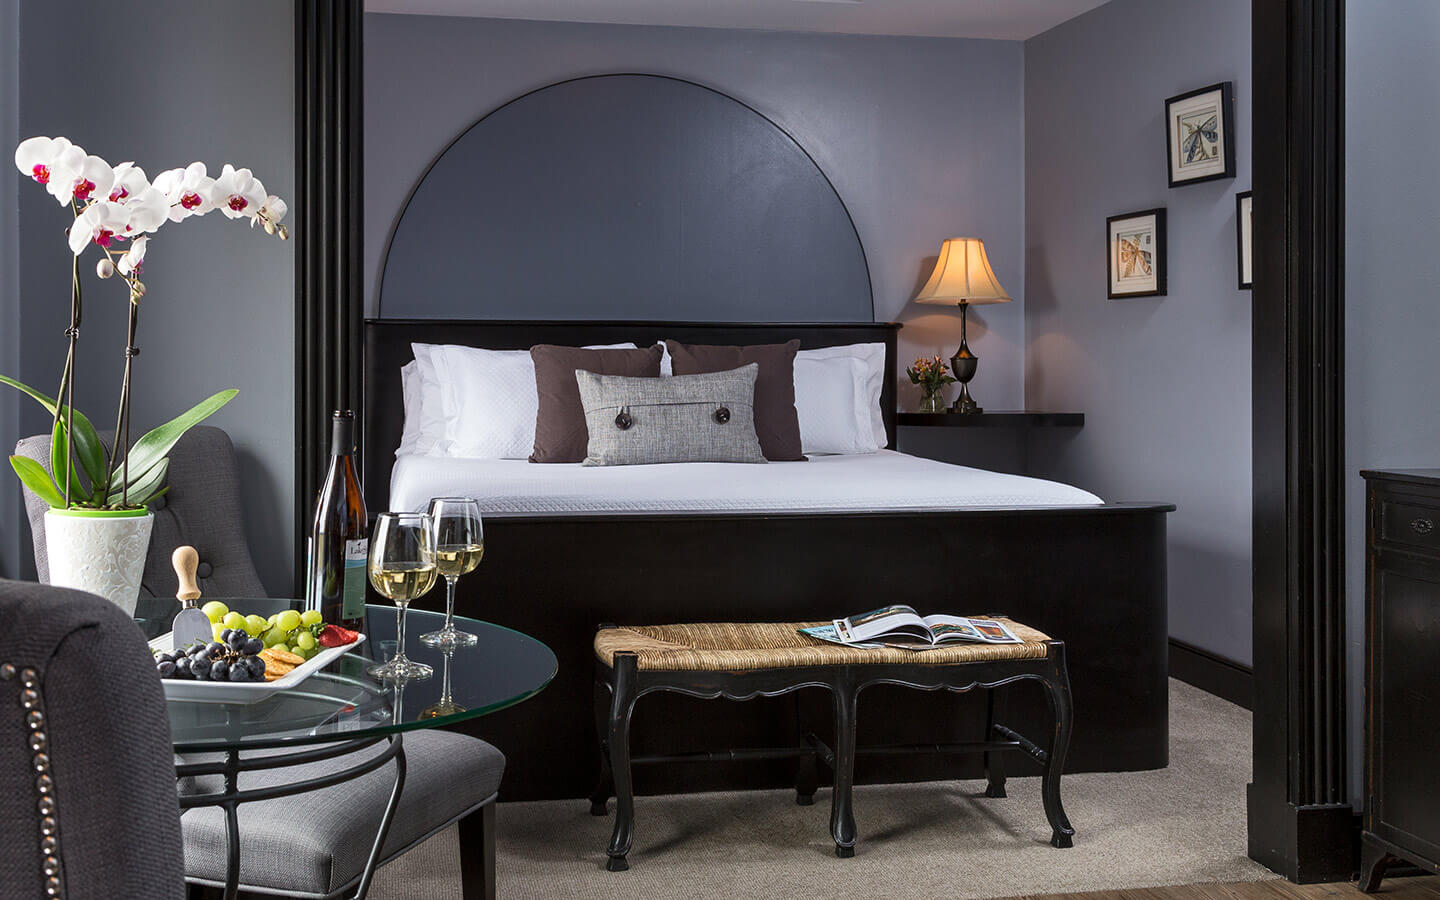 Room with a king size bed and seating area as well as a drop ceiling feature.